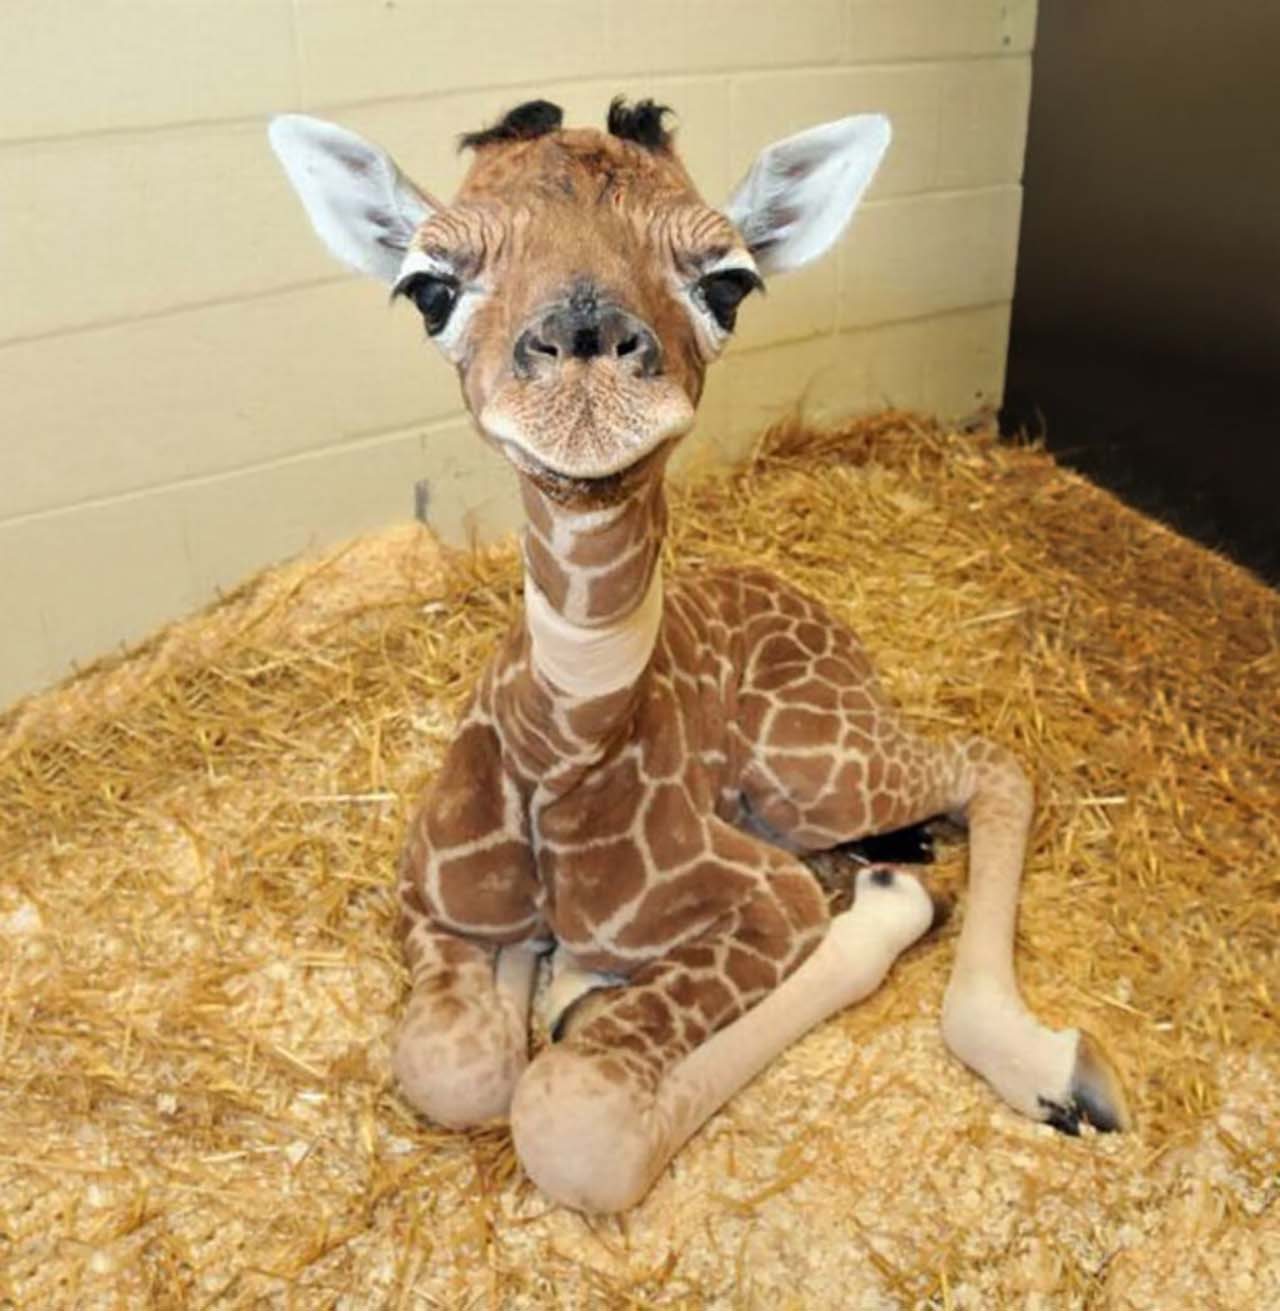 27 Adorable & Tiny Animals That Are Too Cute To Handle #6: Giraffe